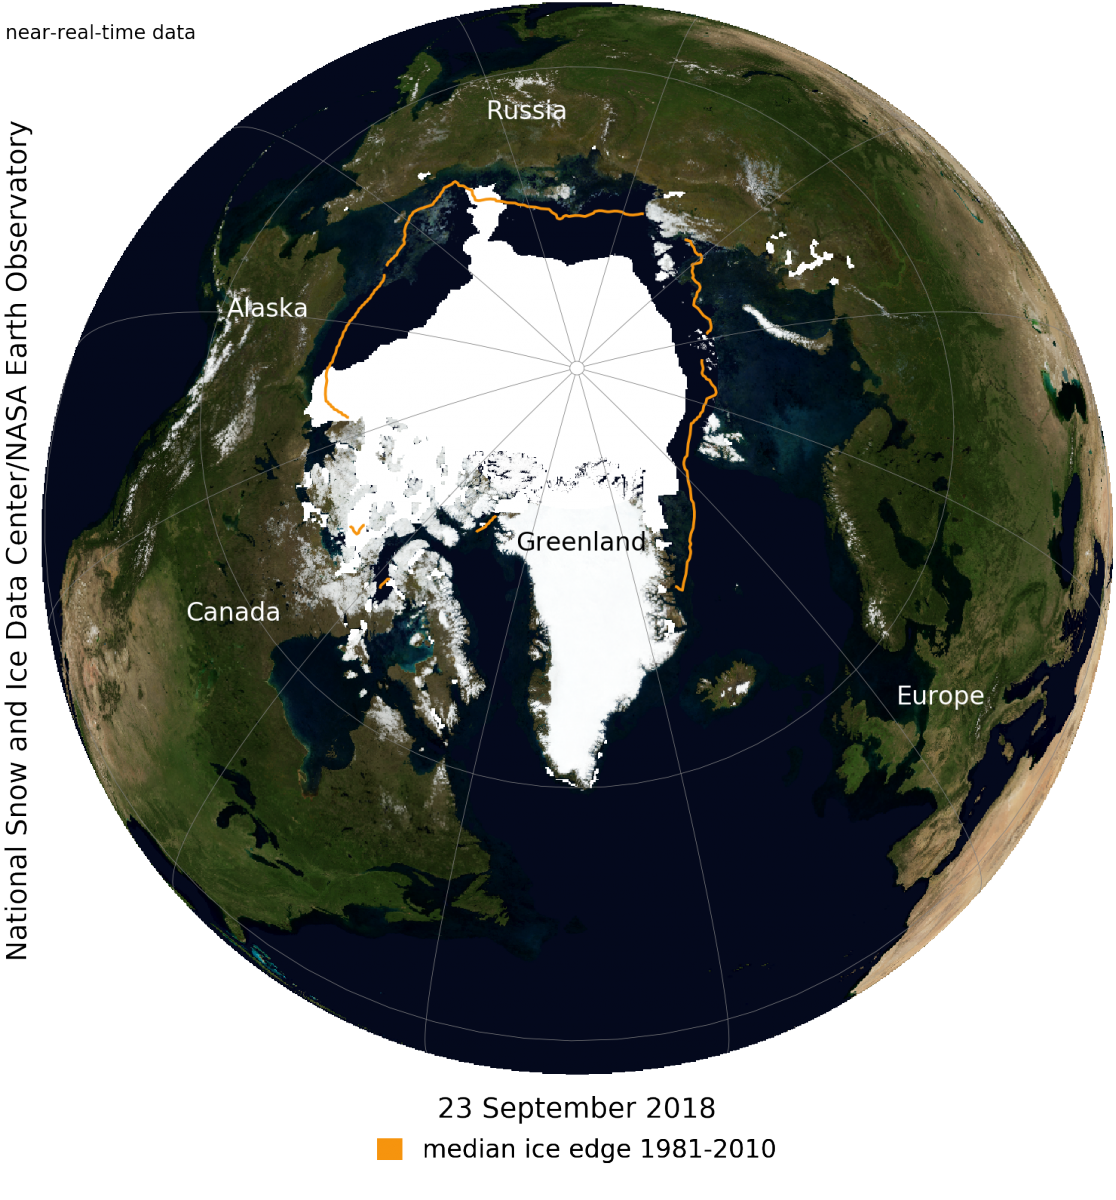 Data image showing Arctic sea ice extent for September 2018